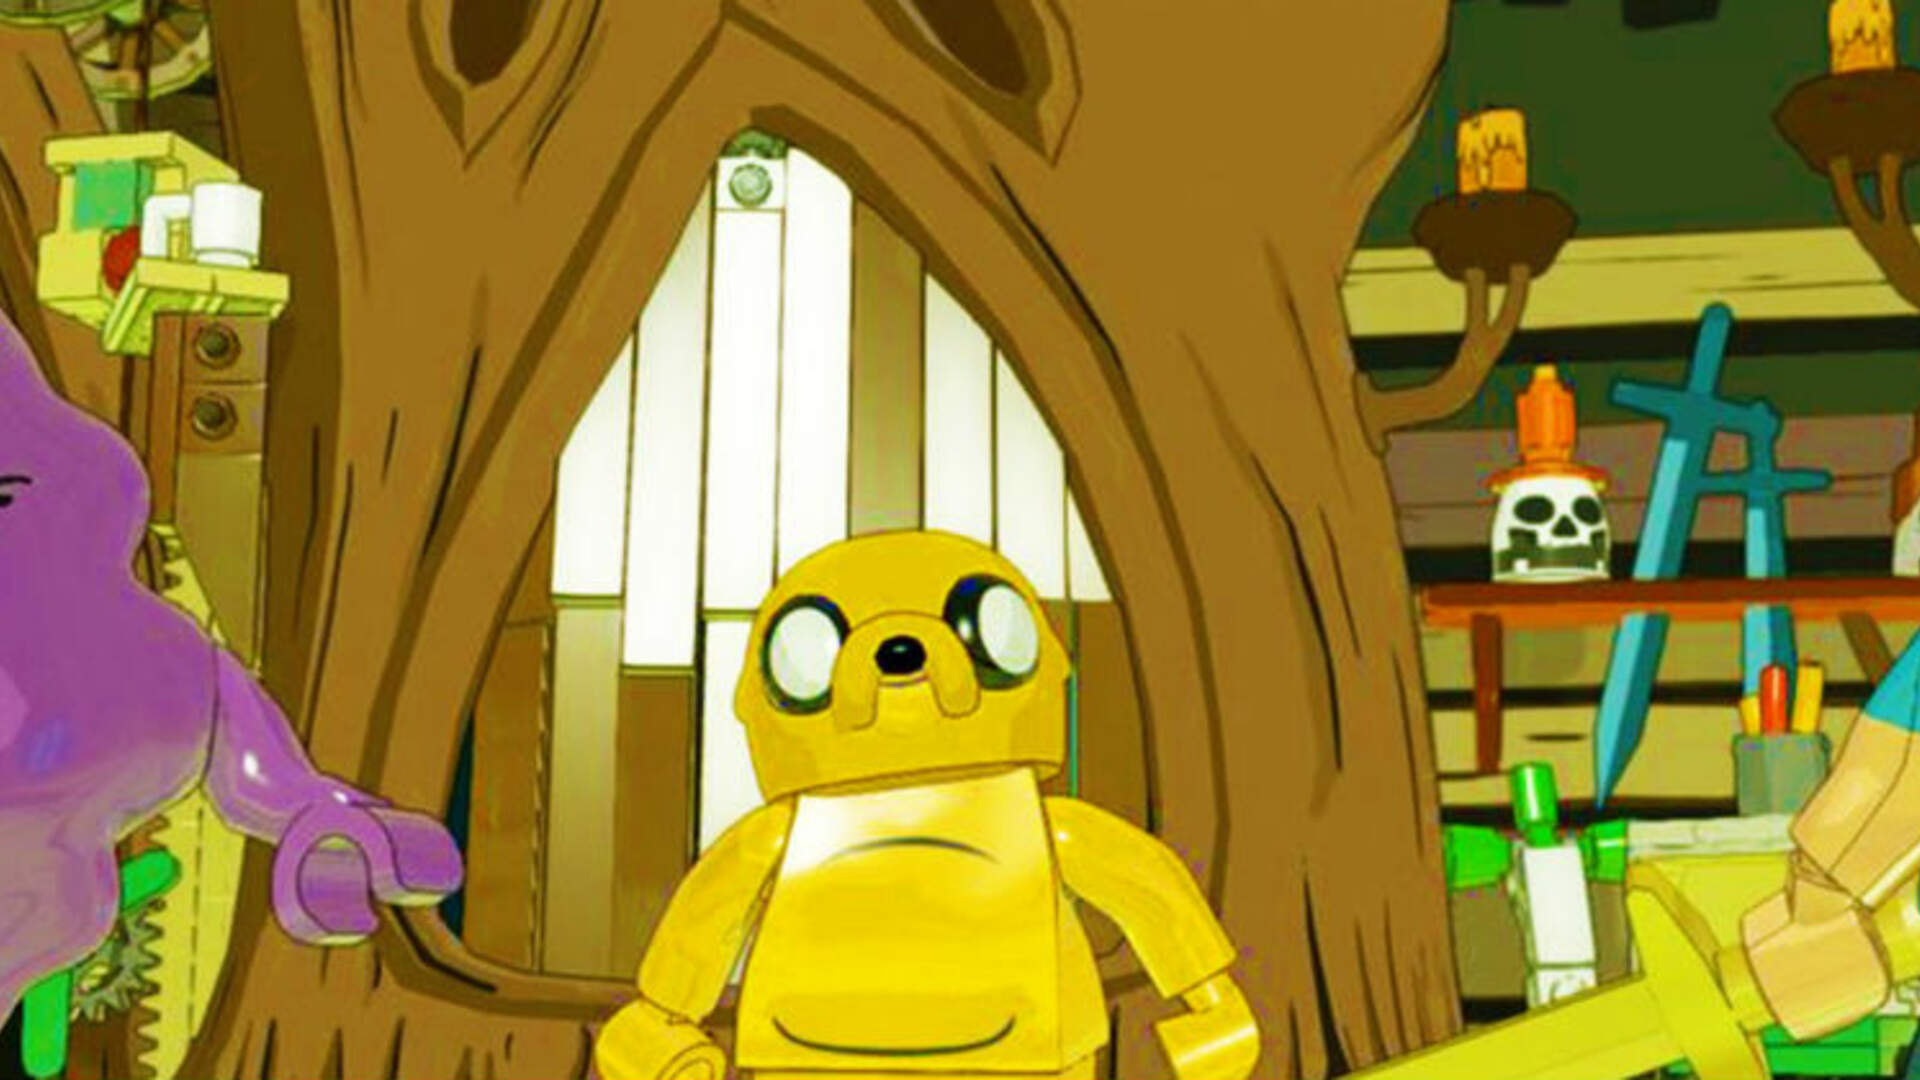 LEGO Dimensions Adventure Time: Where to Find All the Minikit Pieces and Royal Tarts